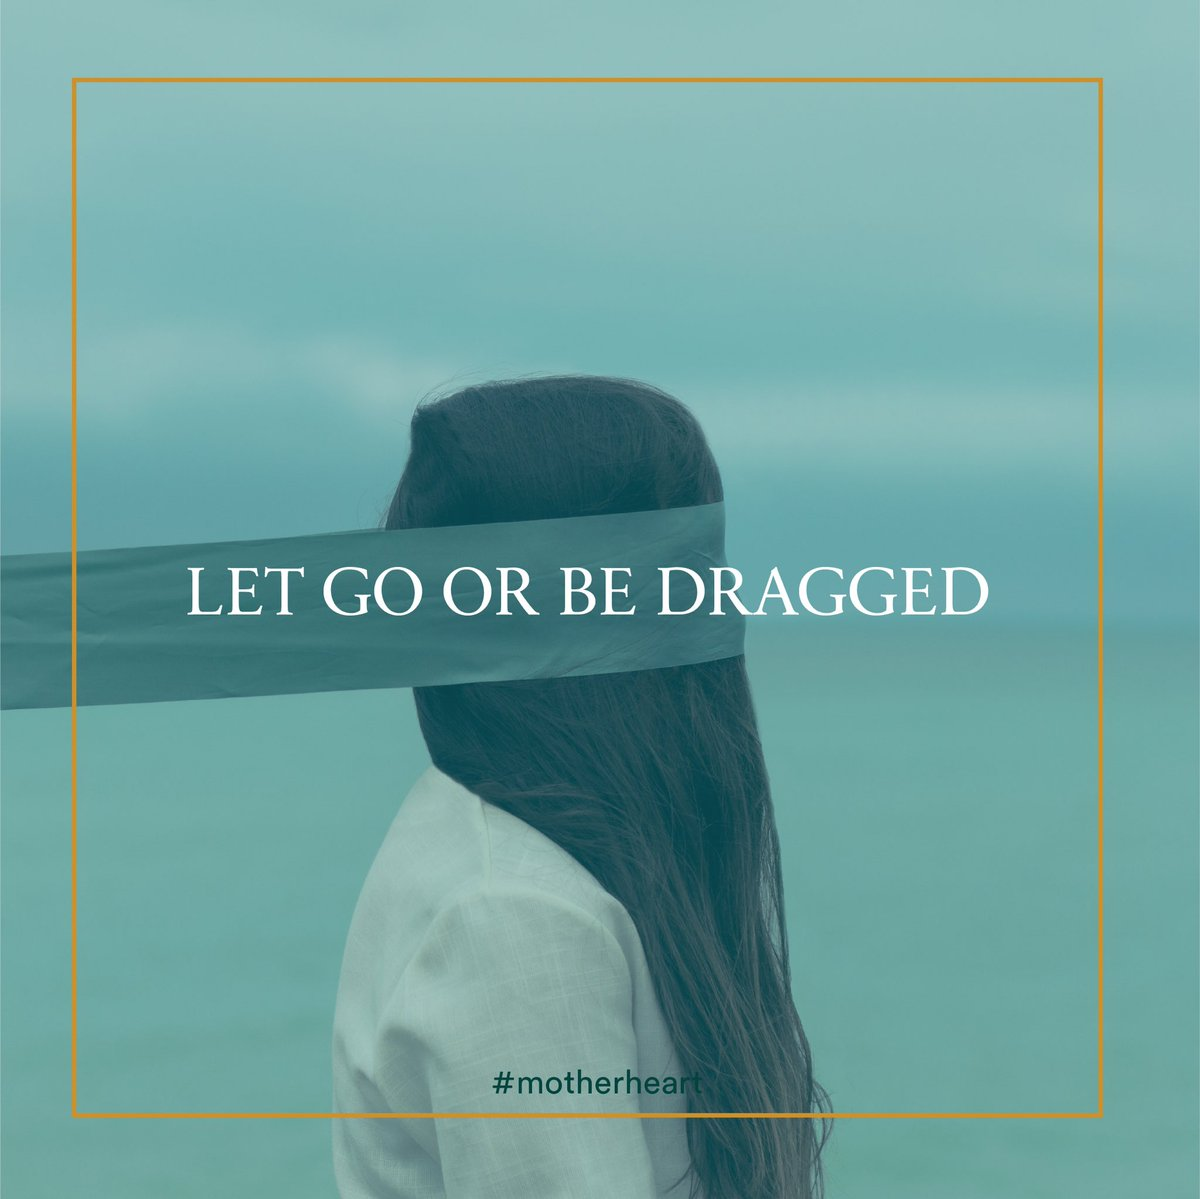 Joanne Bradford On Twitter Let Go Or Be Dragged Quote